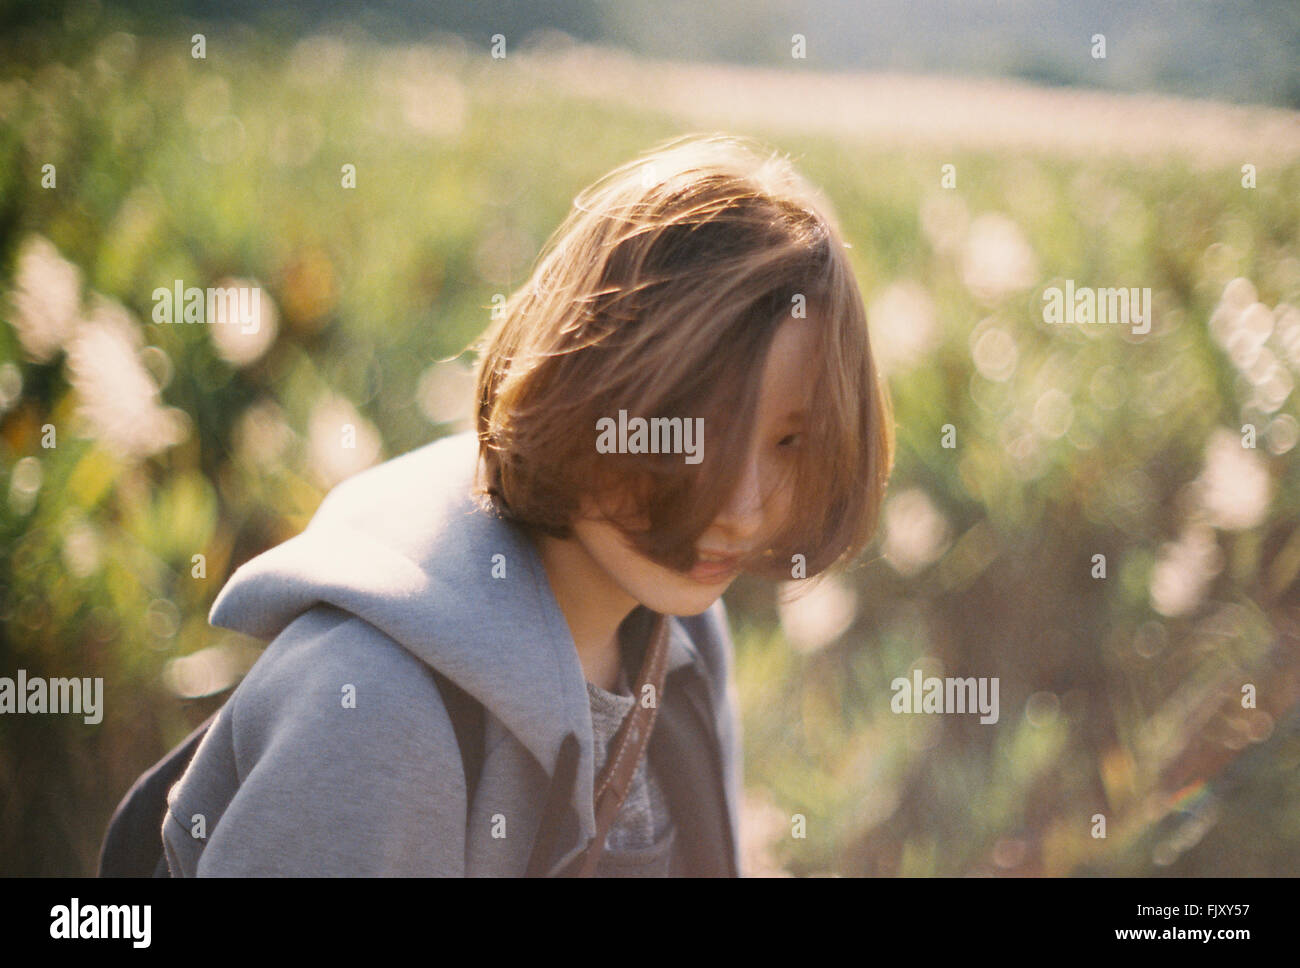 Portrait Of Young Woman On Field - Stock Image